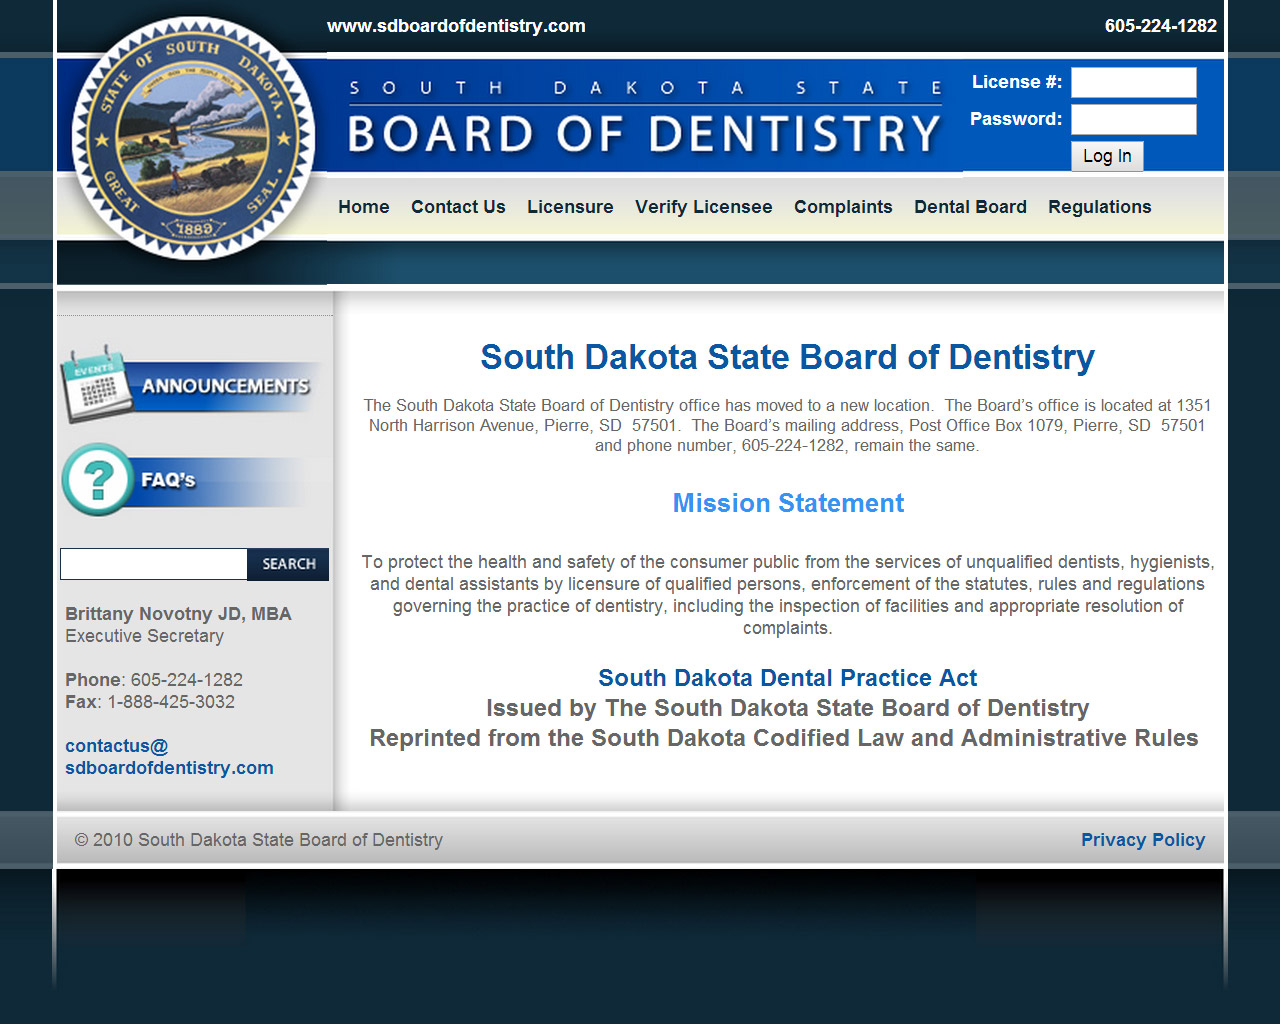 SD Board of Dentistry